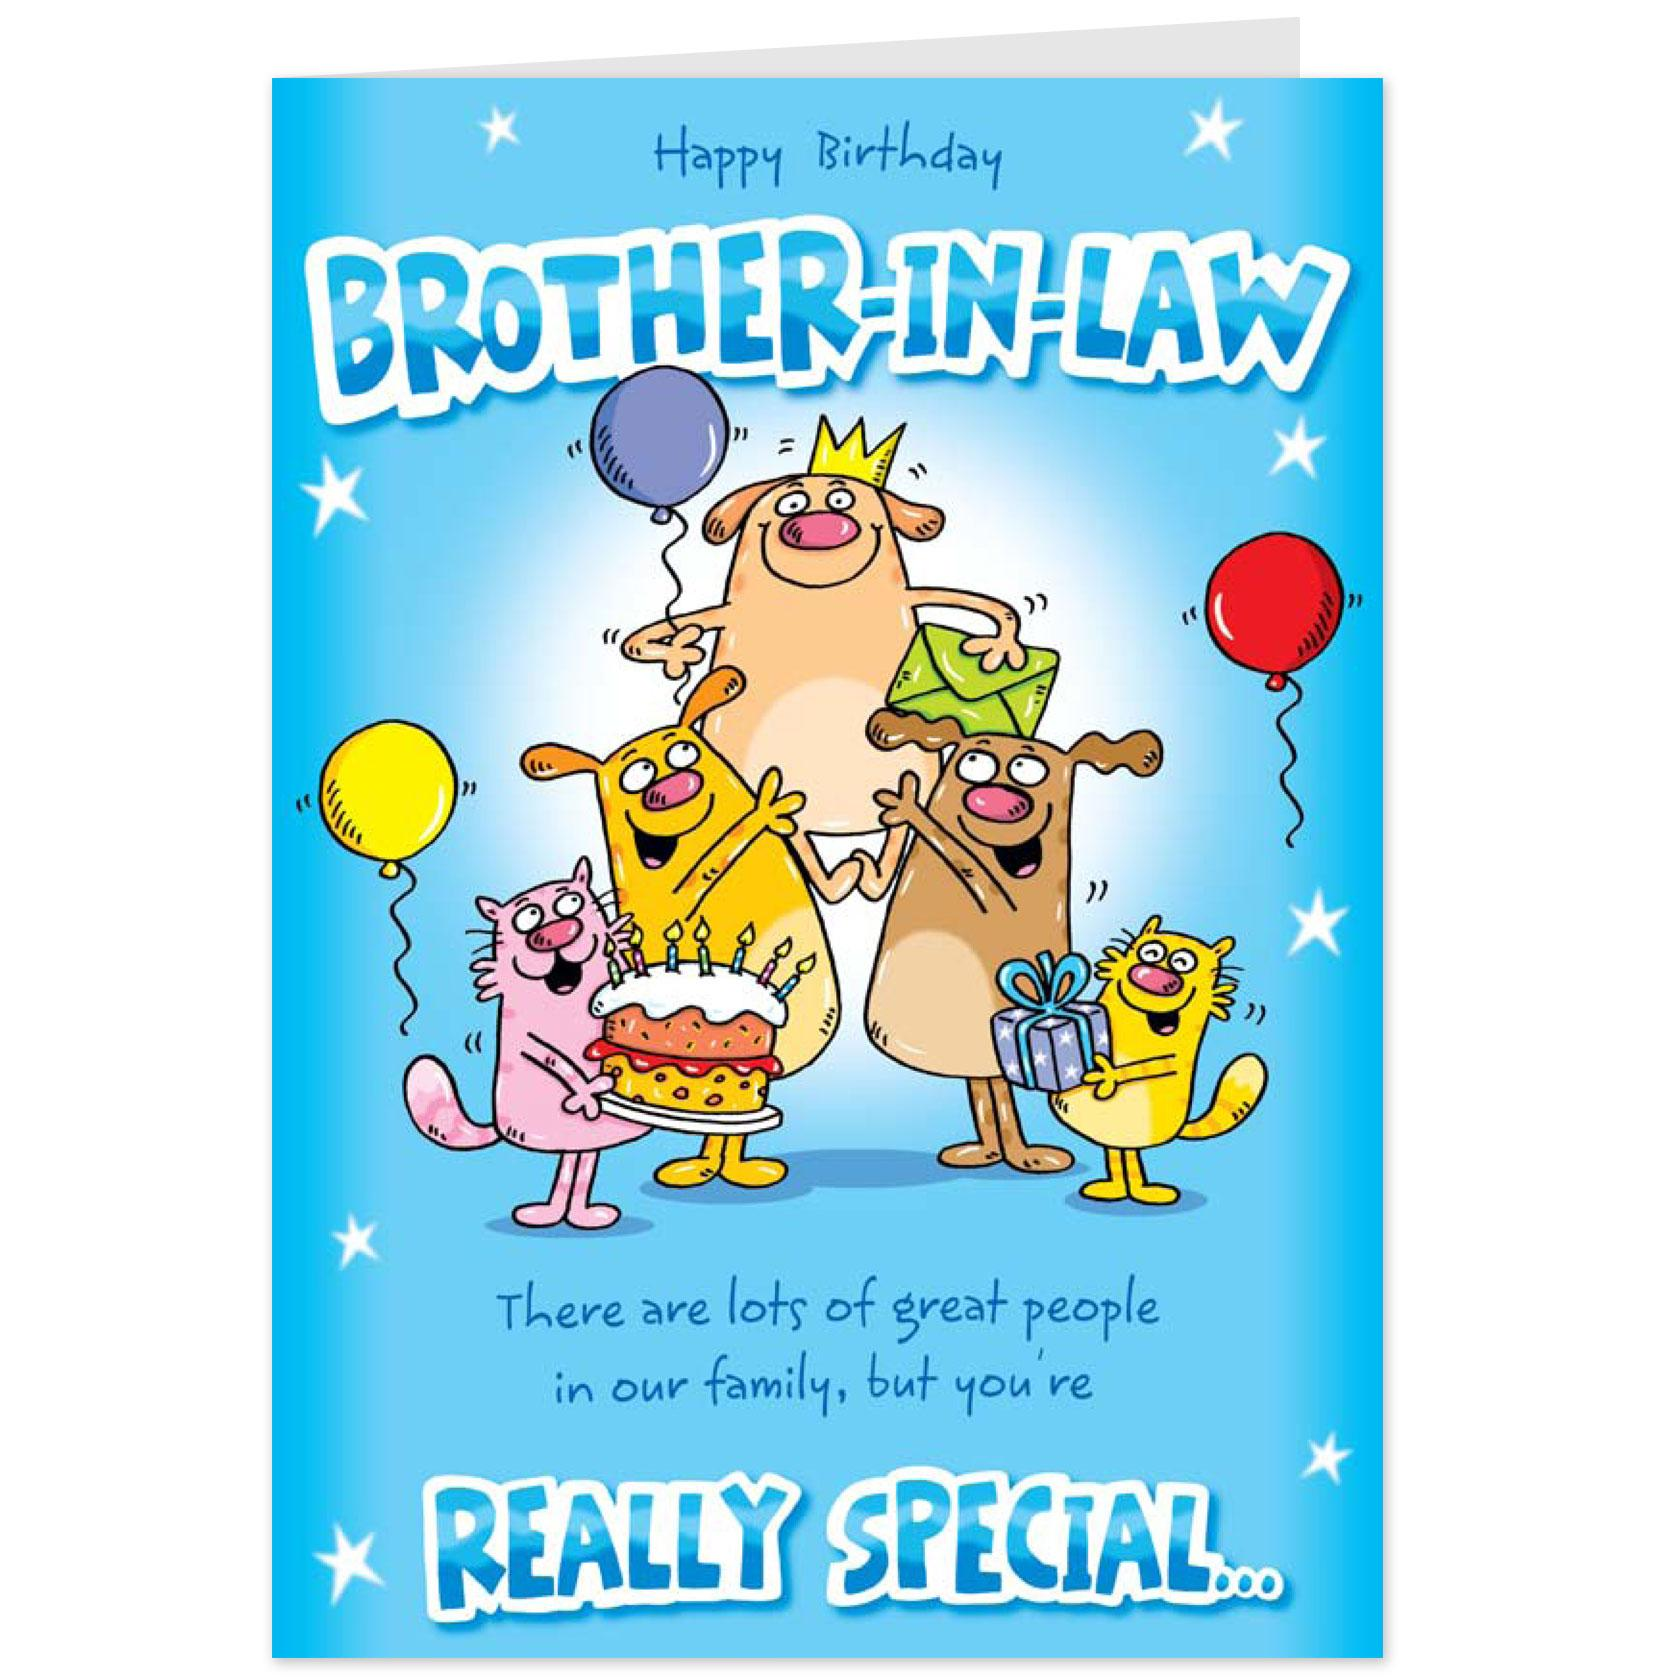 birthday card messages brother in law ; 77ab02409a7d5162b9a7478967fe7752